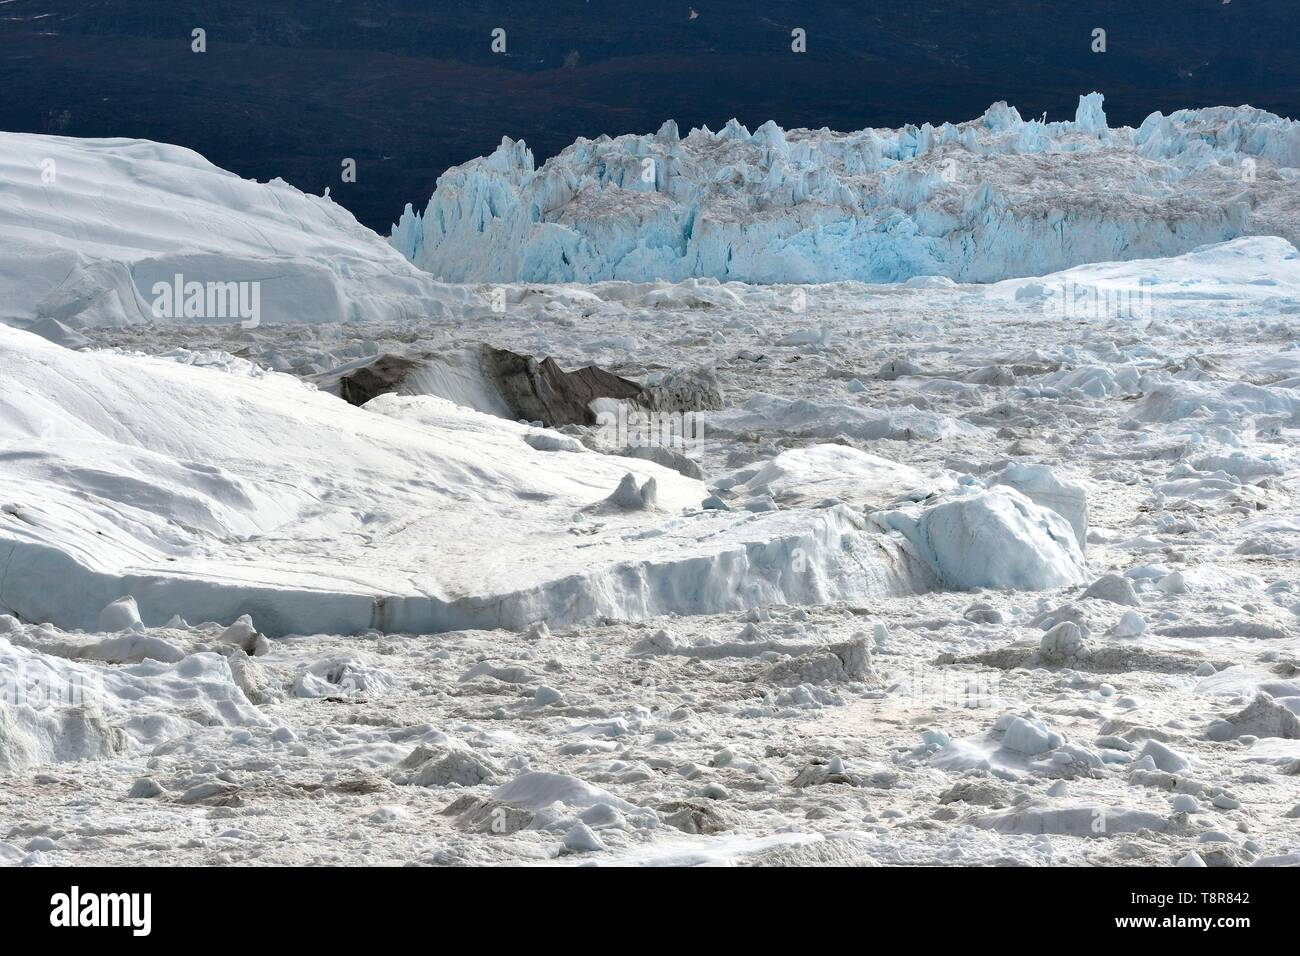 Greenland, West Coast, Disko Bay, Ilulissat, icefjord listed as World heritage by UNESCO that is the mouth of the Sermeq Kujalleq Glacier (Jakobshavn Glacier) - Stock Image